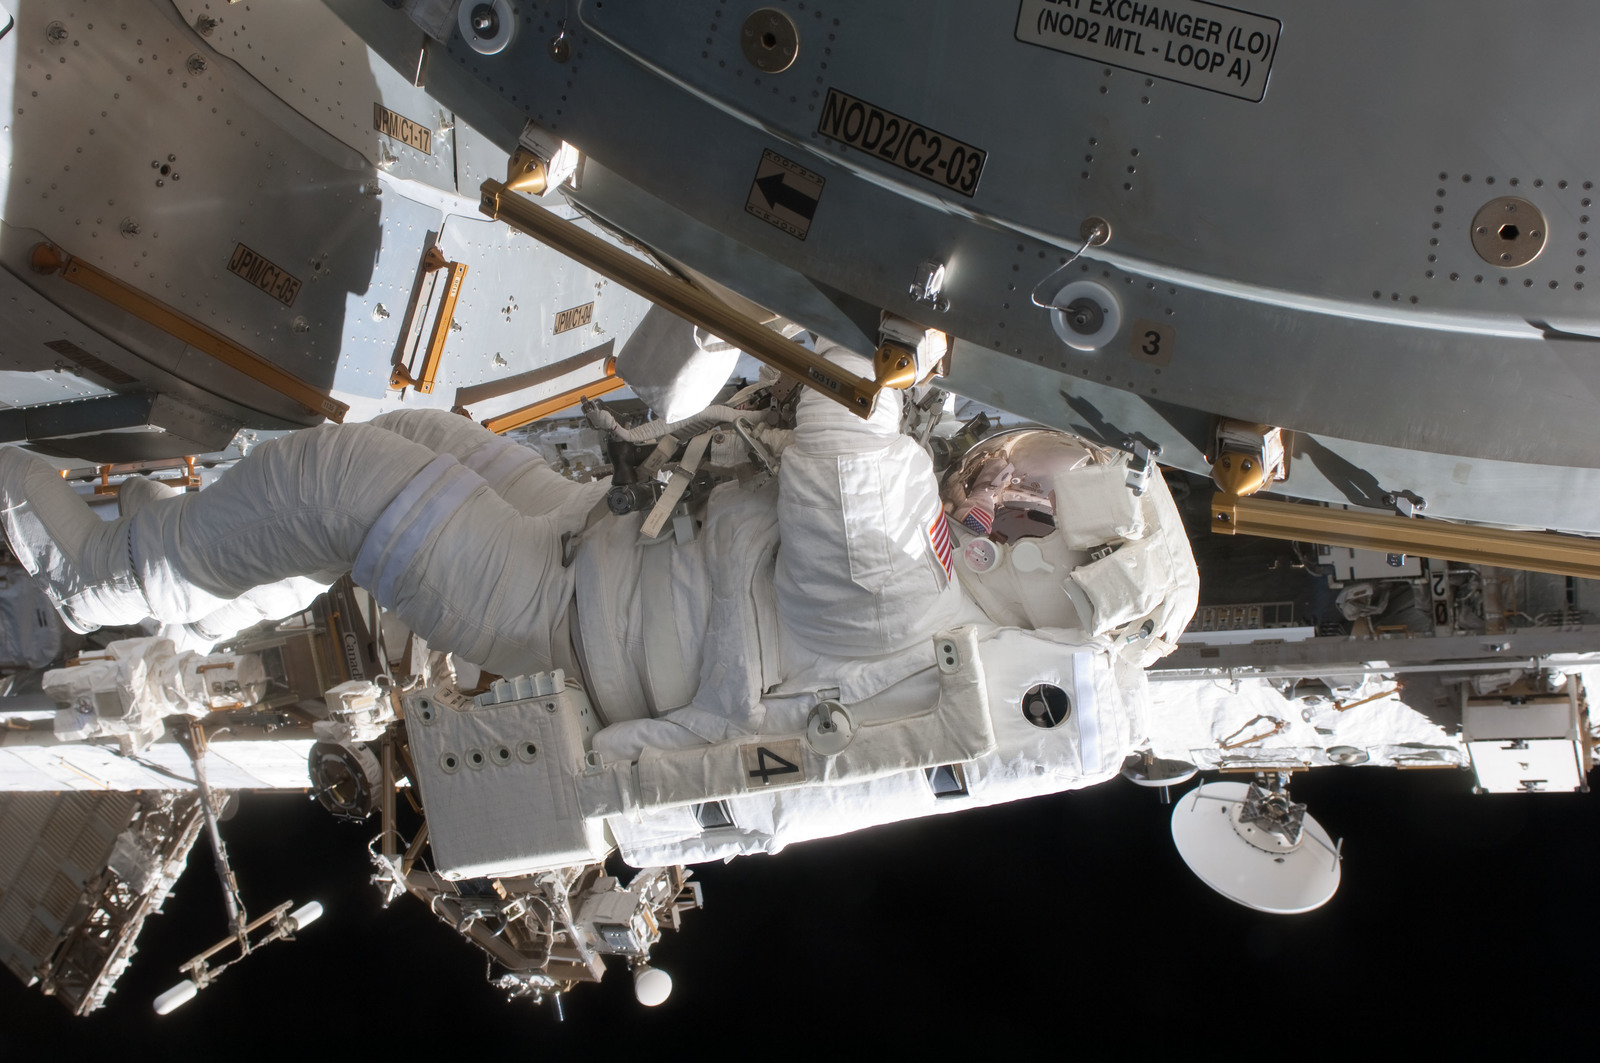 S127E006846 - STS-127 - Kopra at JPM during EVA-1 on STS-127 / Expedition 20 Joint Operations